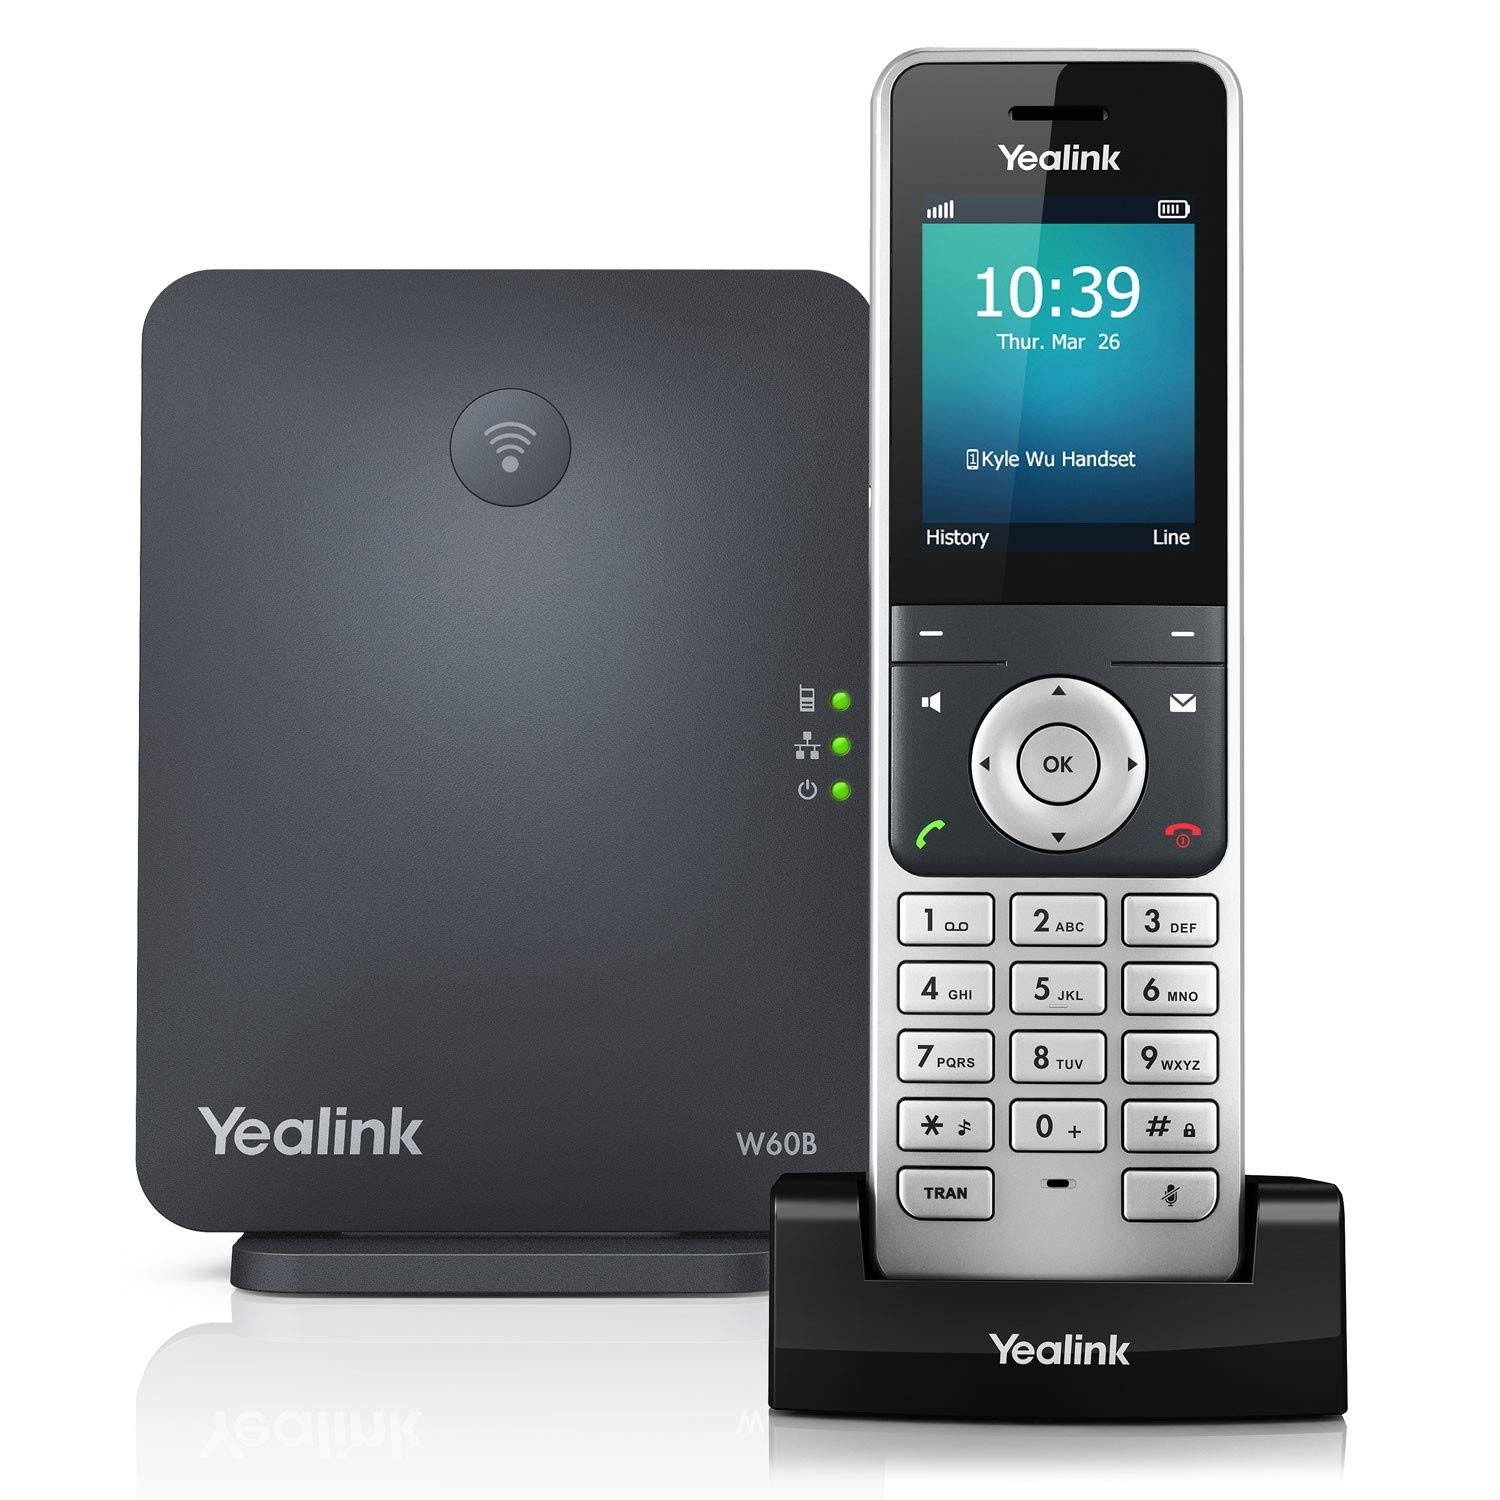 Yealink W60P Cordless DECT IP Phone and Base Station, 2.4-Inch Color Display. 10/100 Ethernet, 802.3af PoE, Power Adapter Included by Yealink